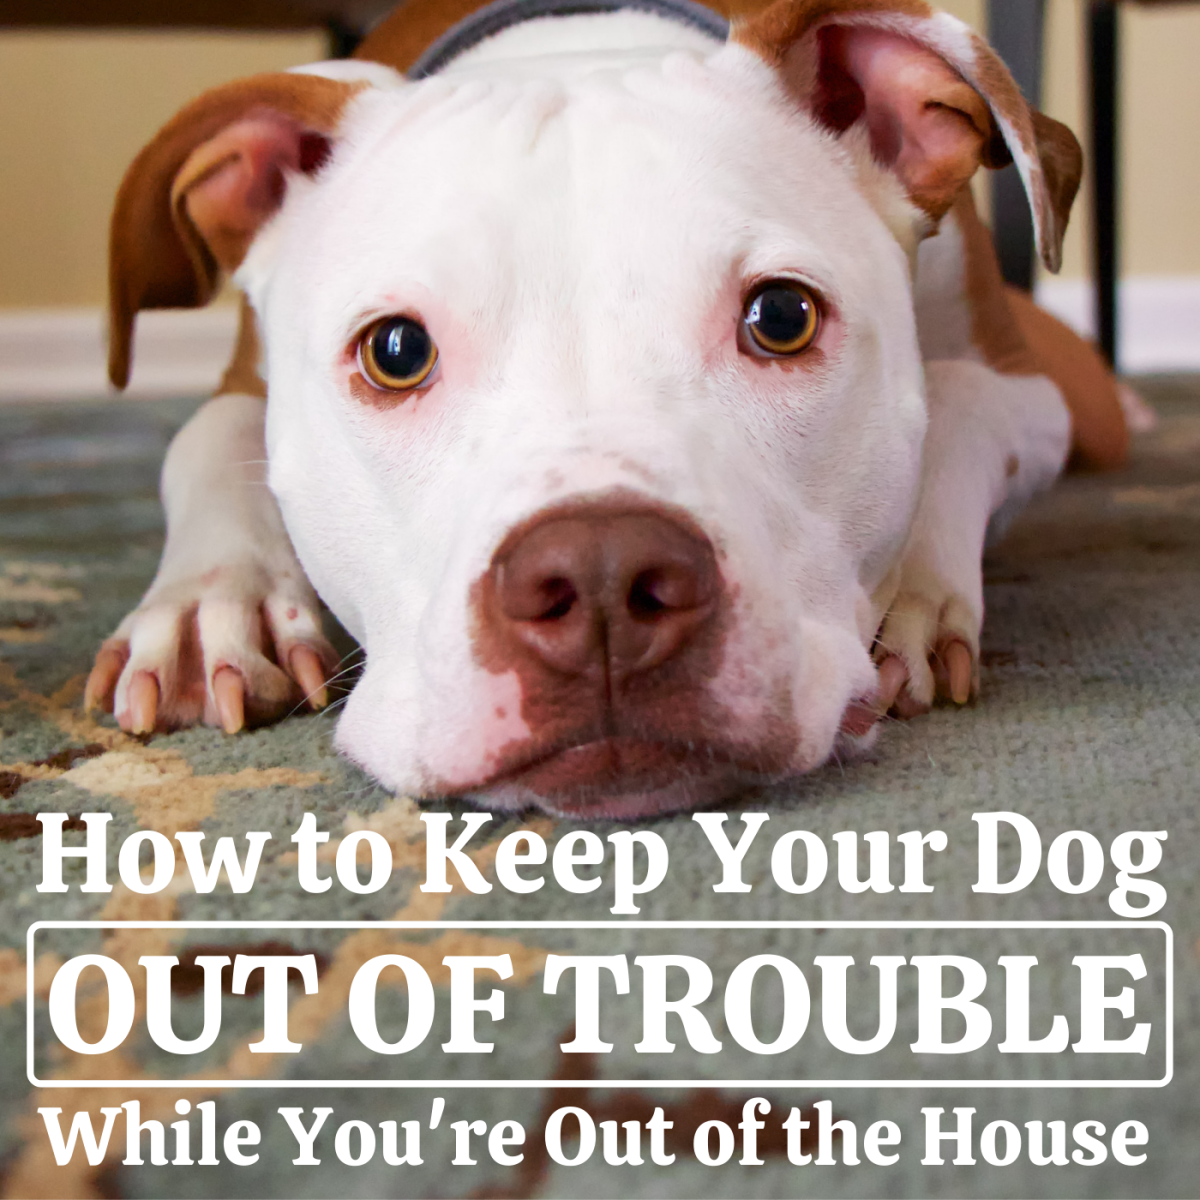 These eight smart moves can help keep your dog out of trouble even when you're not around.